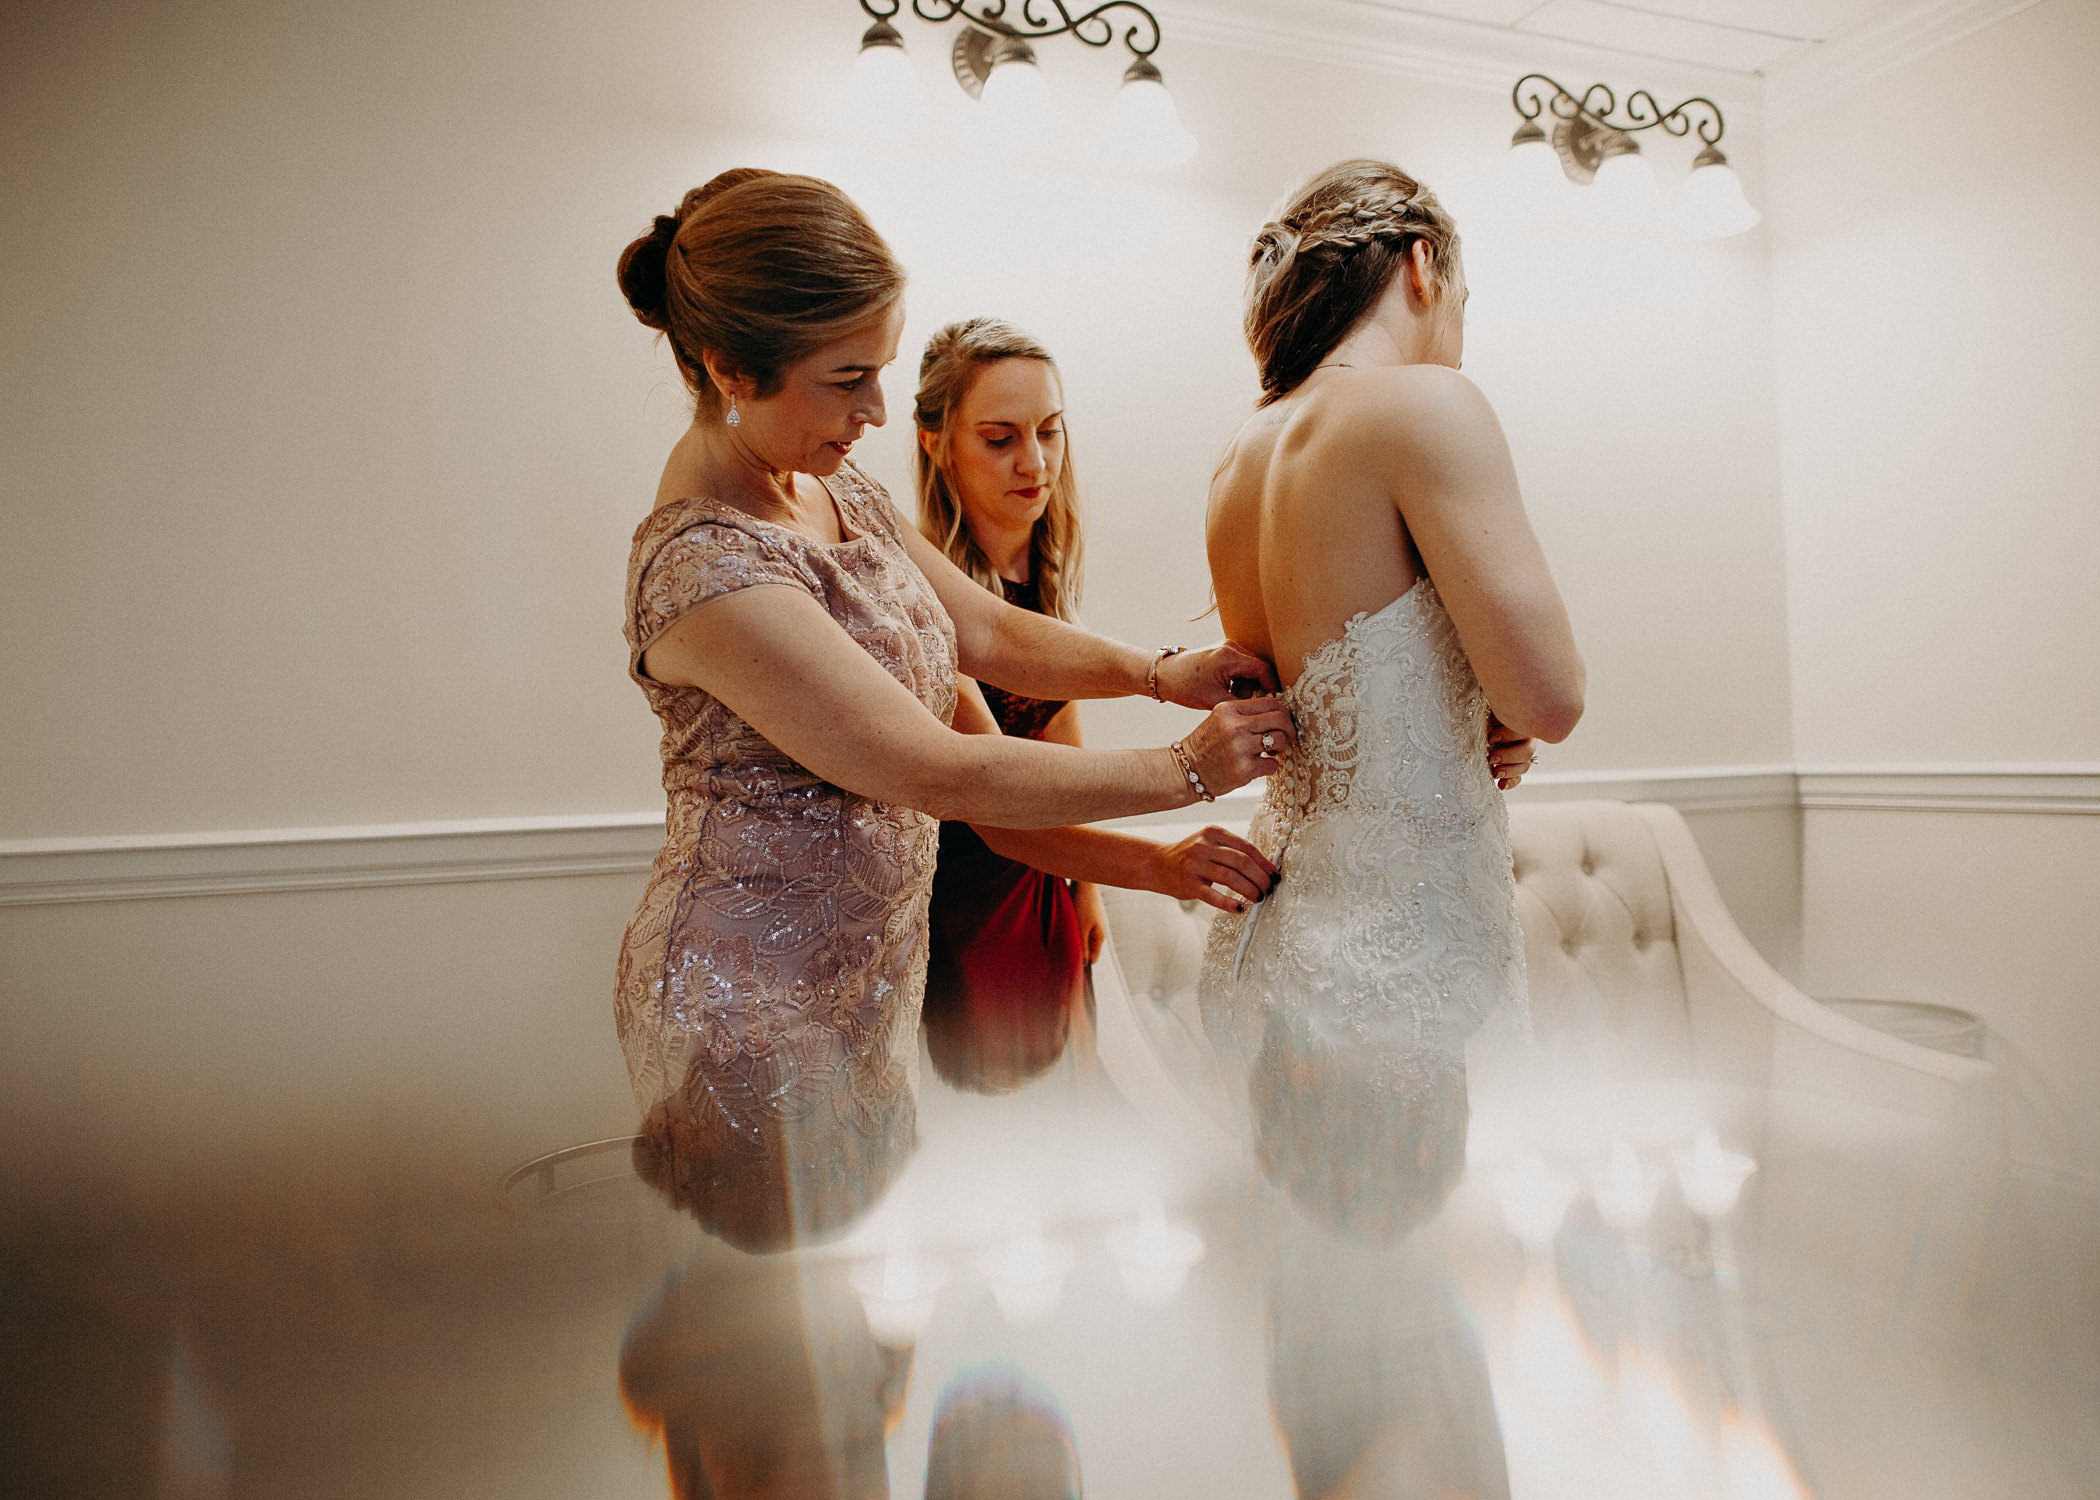 23 - Wedding Day Atlanta Photographer : Getting Ready, Ceremony, Reception, Bride and Groom, Wedding Party. .jpg